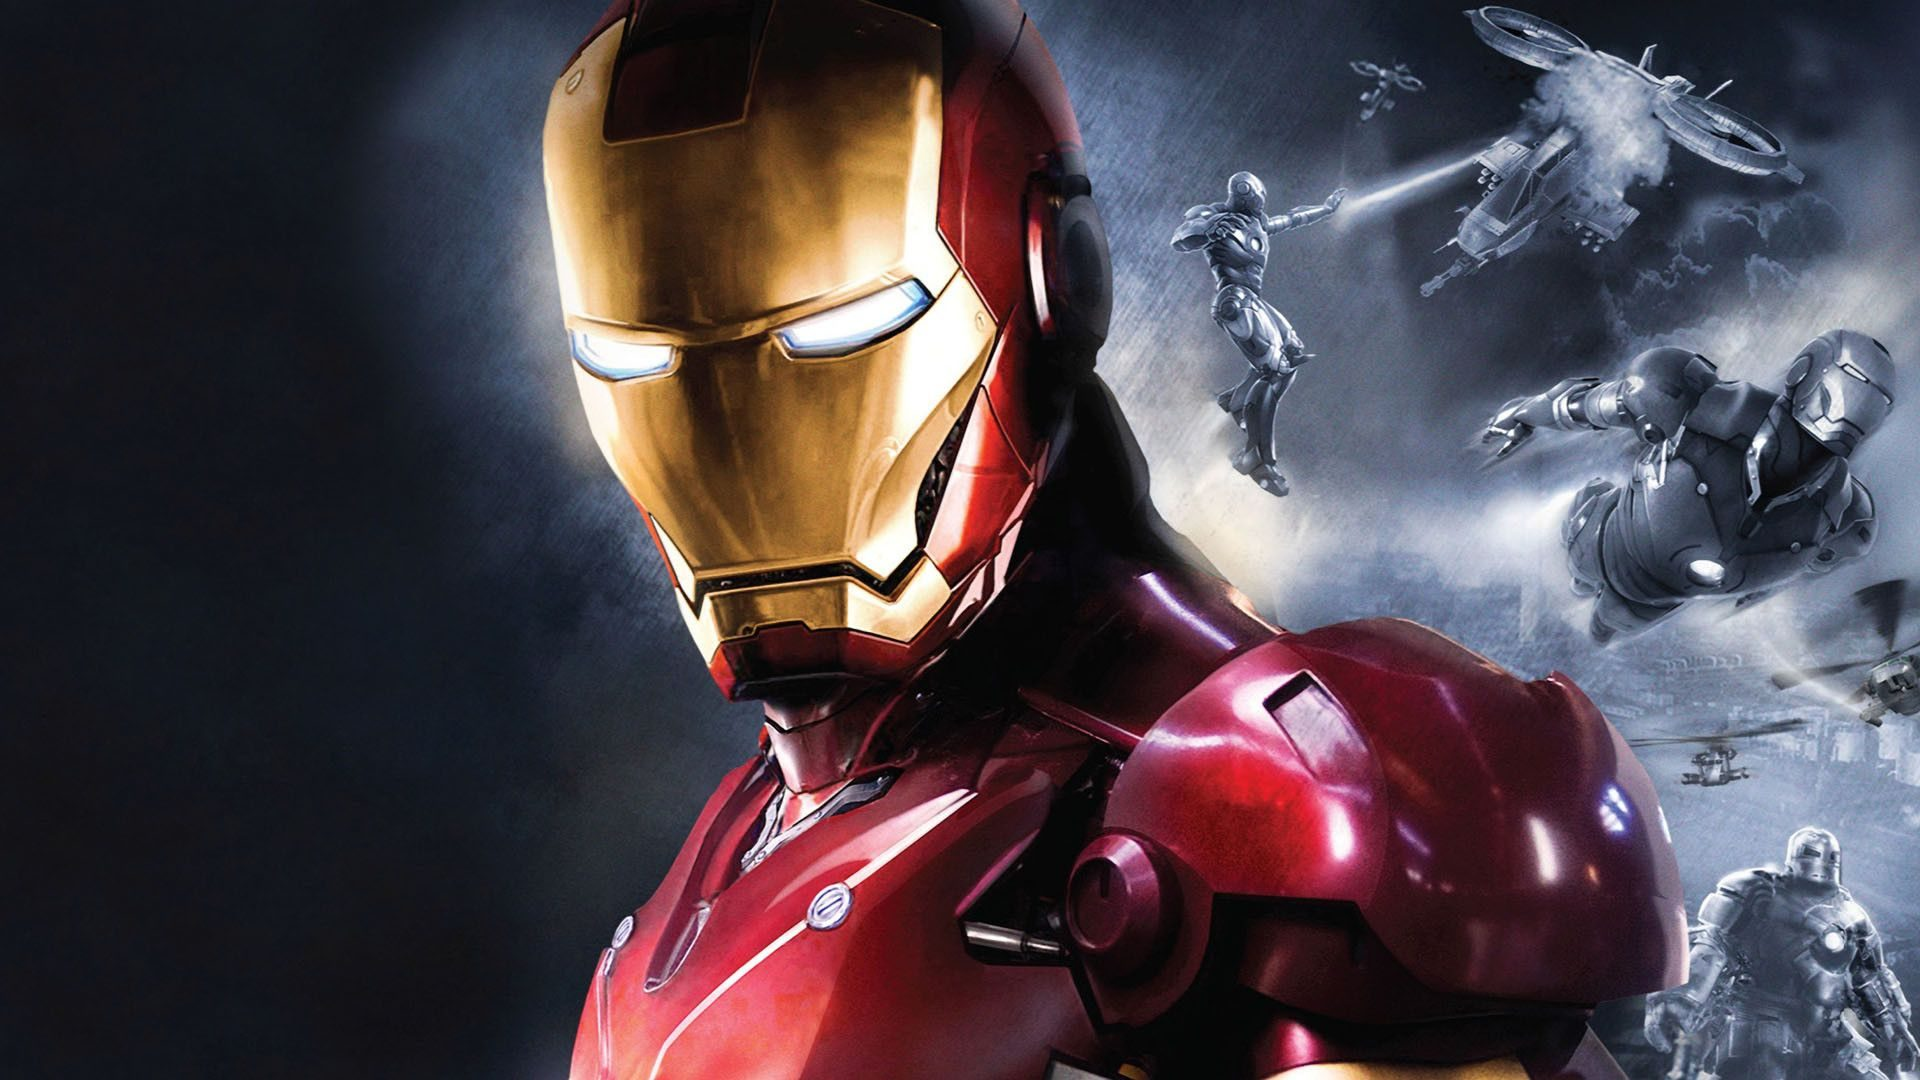 fondos-de-pantalla-de-iron-man-en-hd-1920×1080-wallpaper-wp3805421